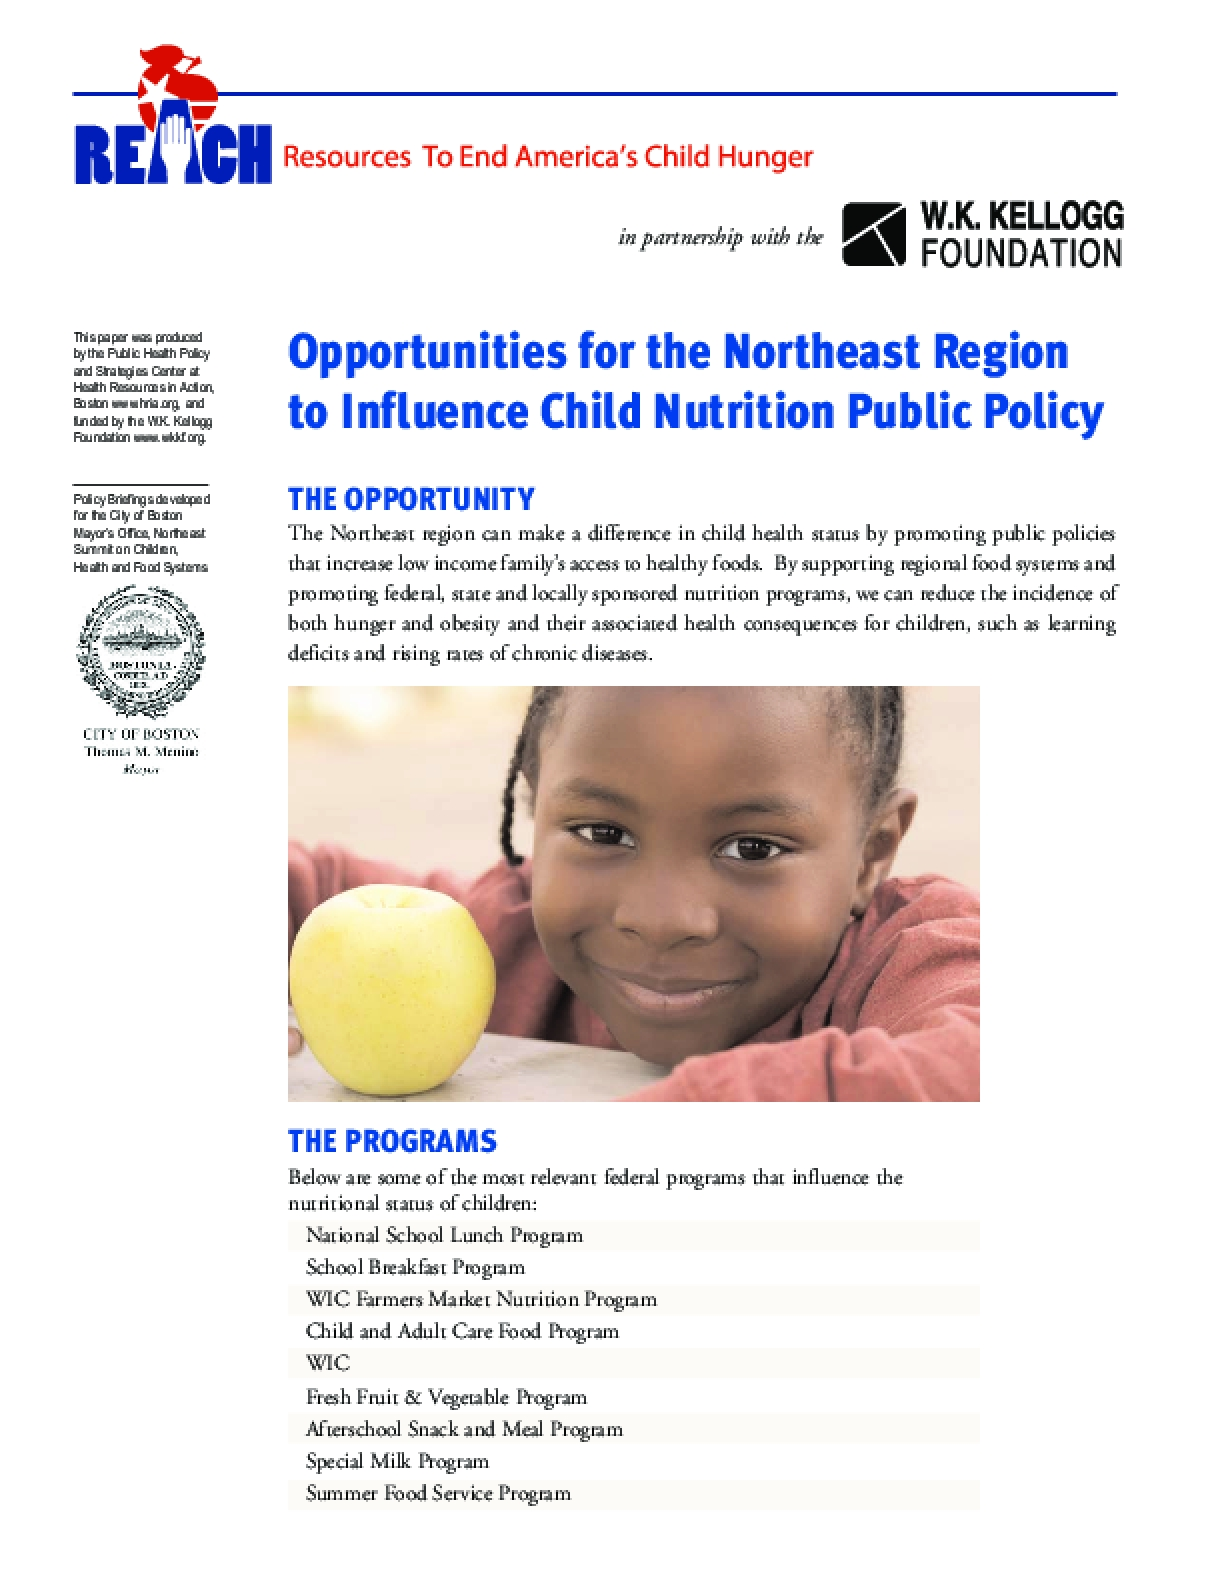 Opportunities for the Northeast Region to Influence Child Nutrition Public Policy